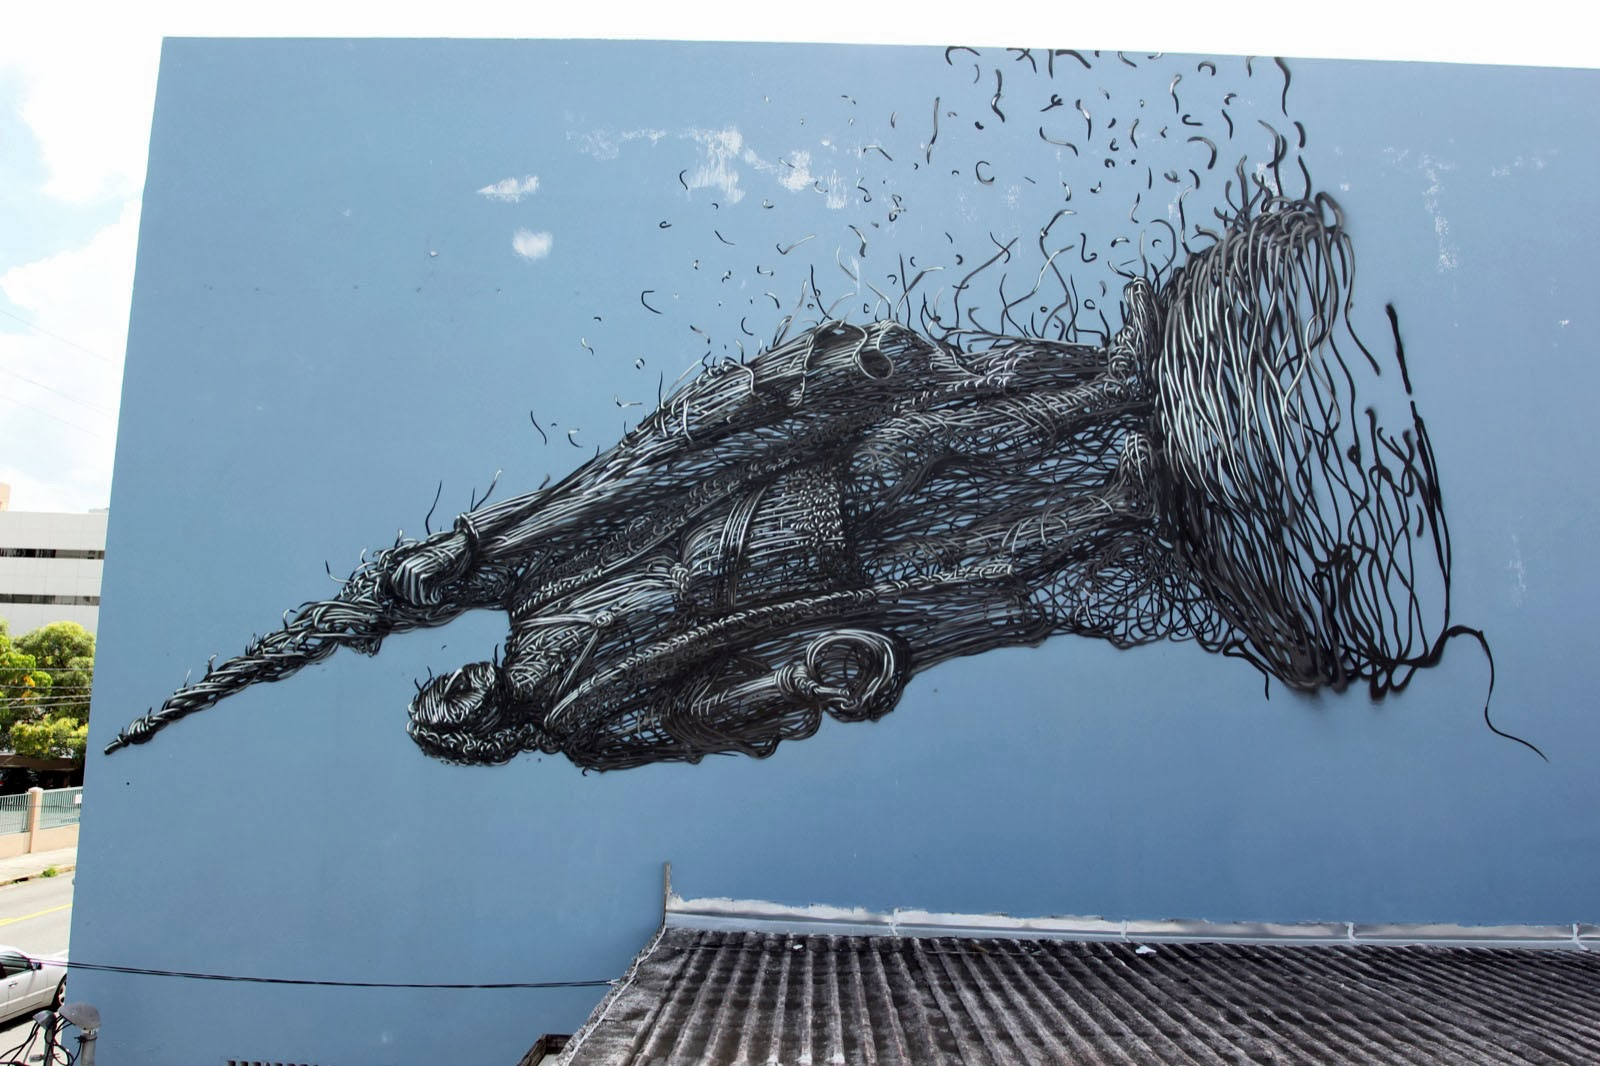 DALeast in San Juan, Puerto Rico for Los Muros Hablan. Photo via StreetArtNews.